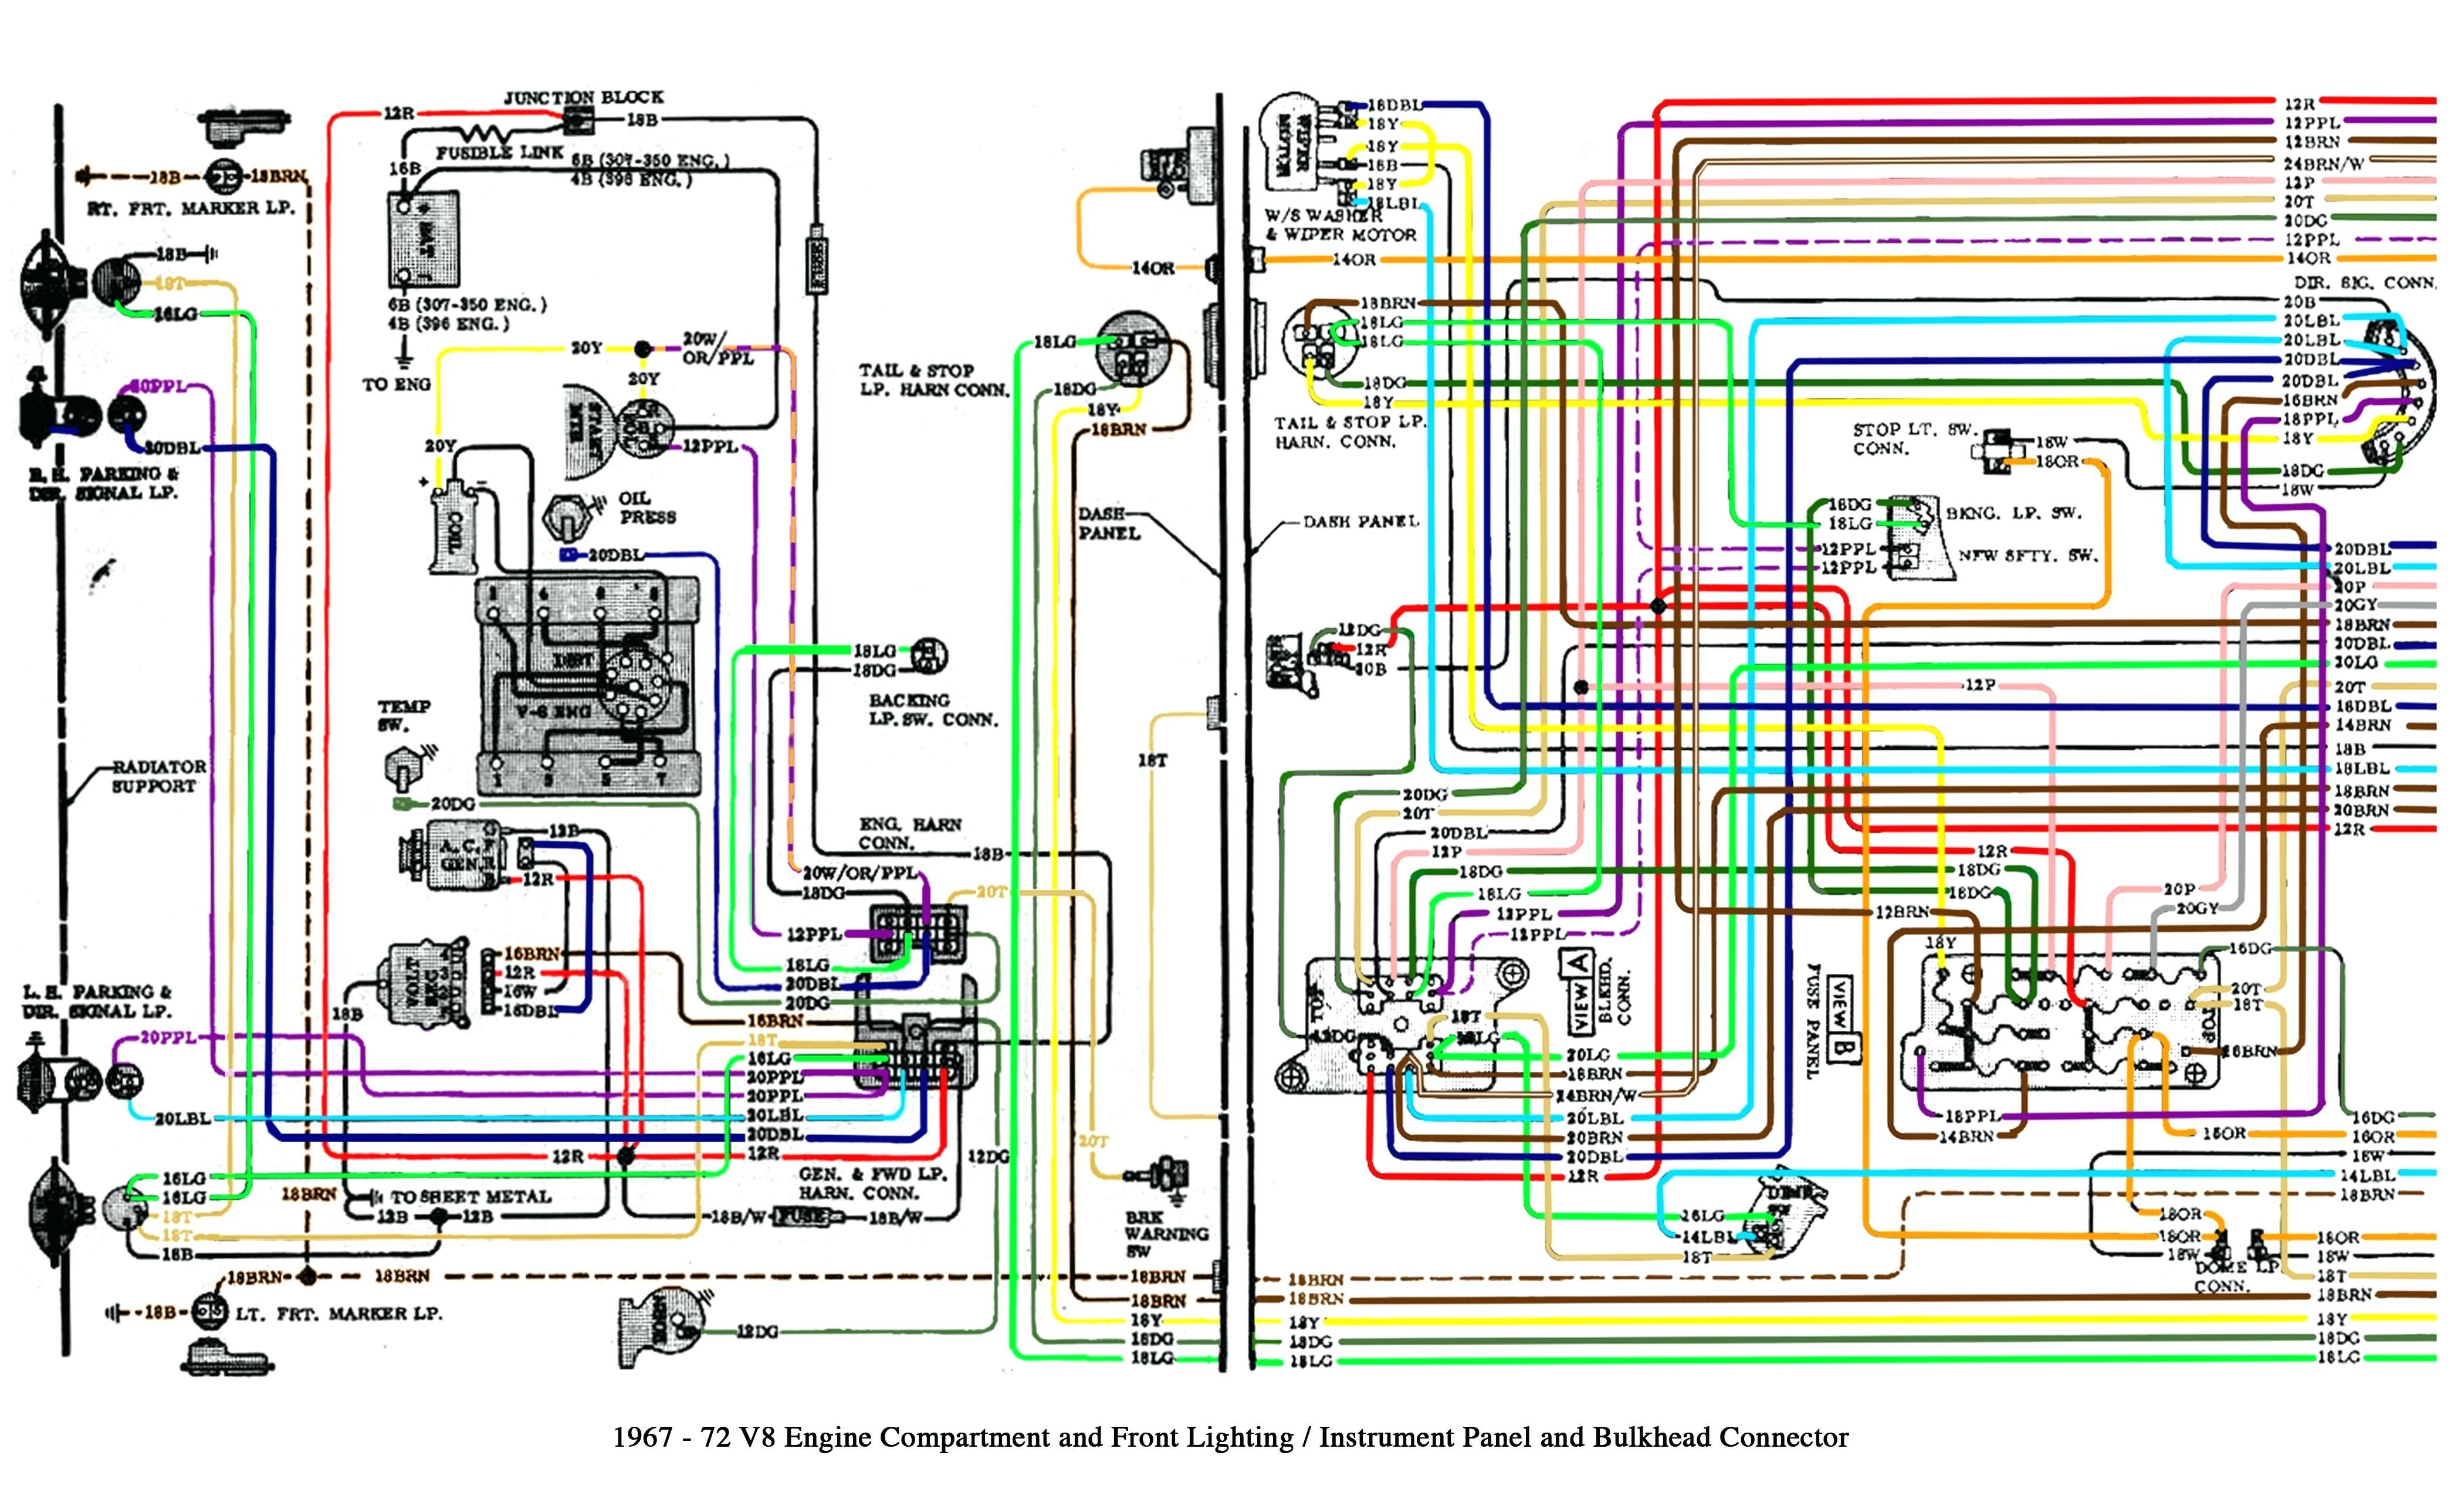 Swell Collection Of Solutions 2000 Chevy S10 Stereo Wiring Diagram 2 Wiring Cloud Rometaidewilluminateatxorg